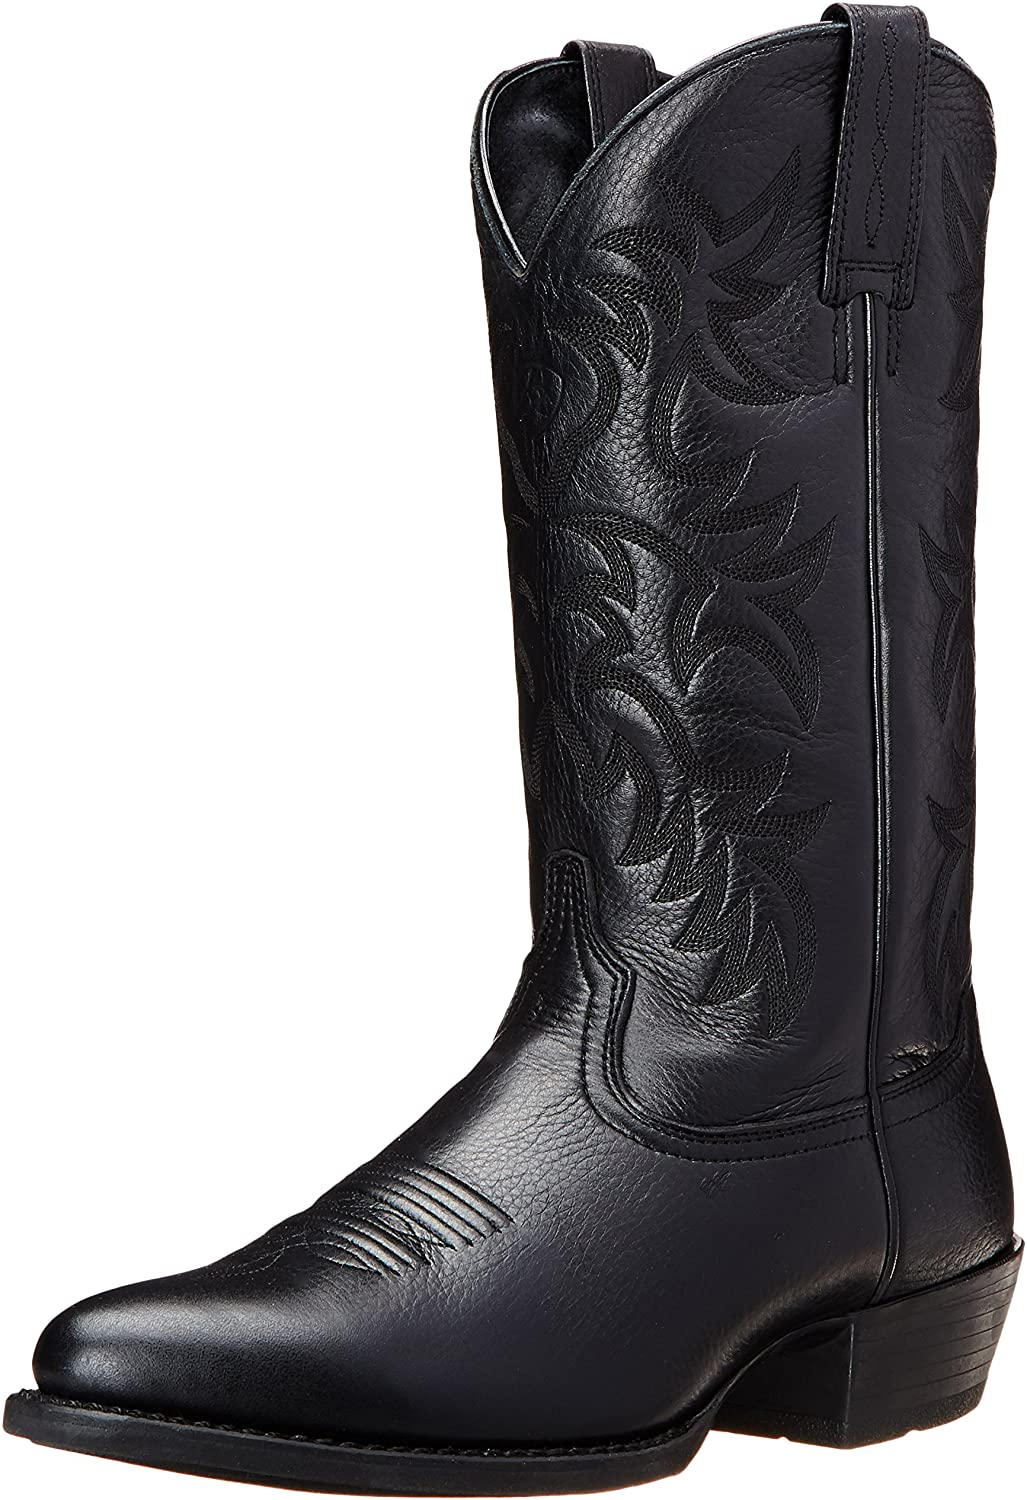 Ariat Heritage Round Toe Western Co Men's High material Challenge the lowest price of Japan Boots -